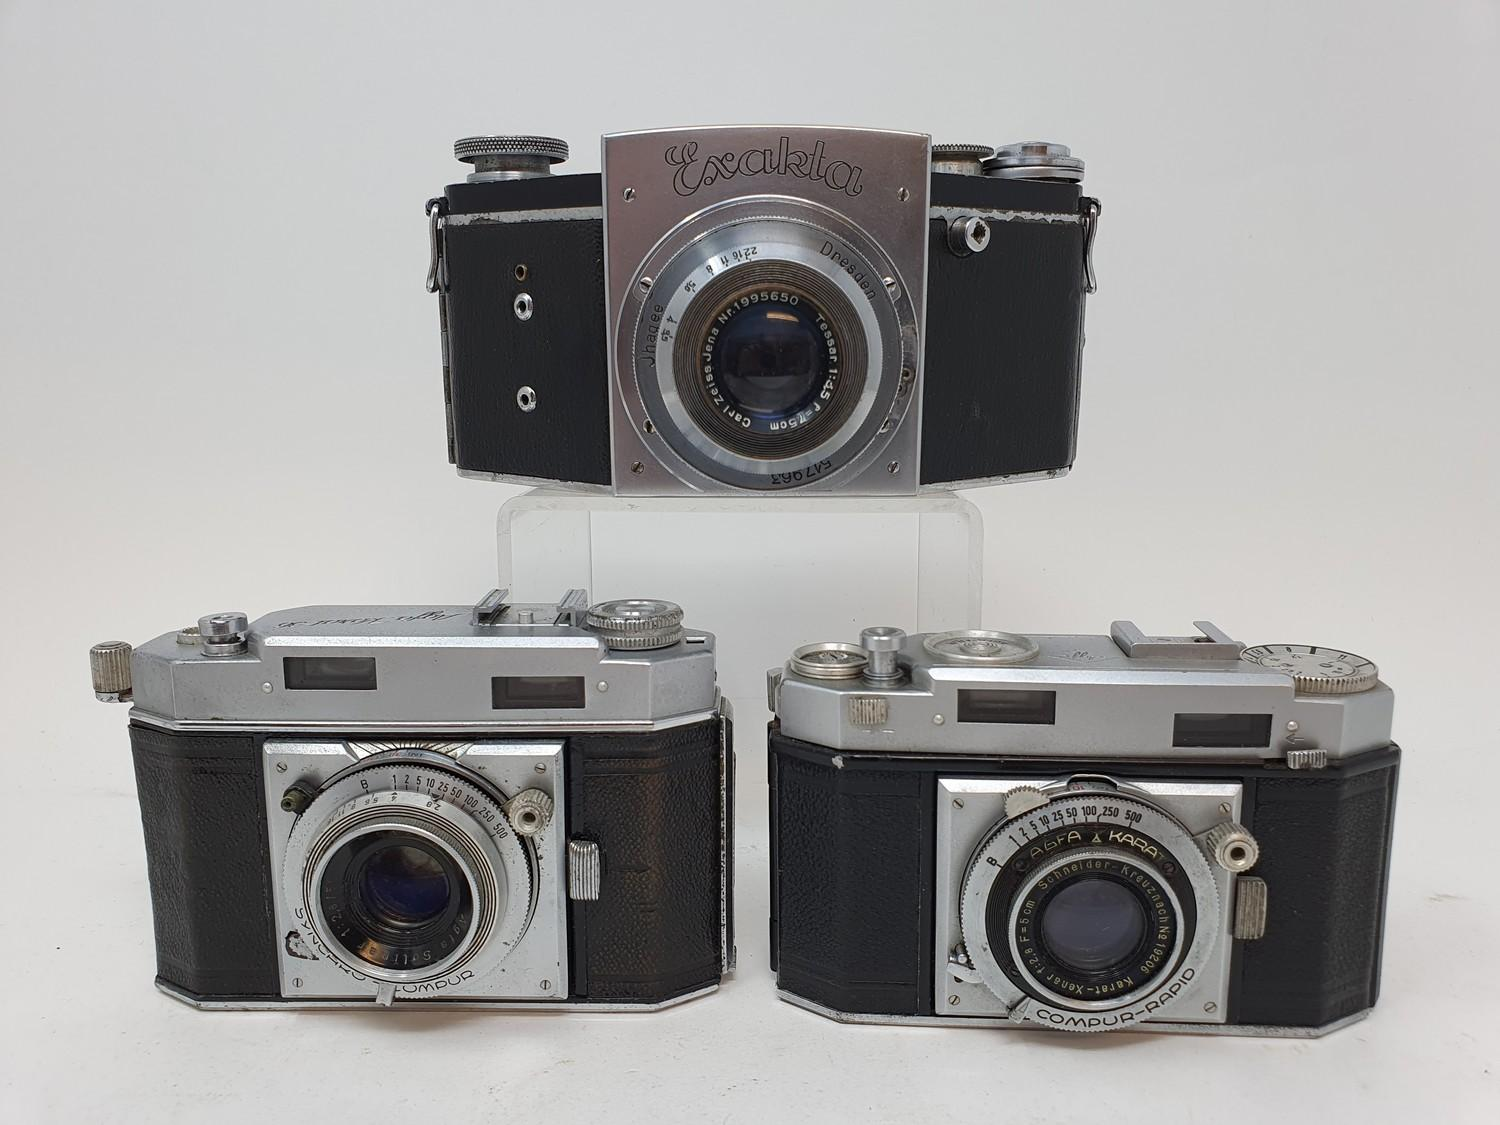 An Exakta camera, Agfa Karat 36 camera and an Agfa camera (3) Provenance: Part of a vast single